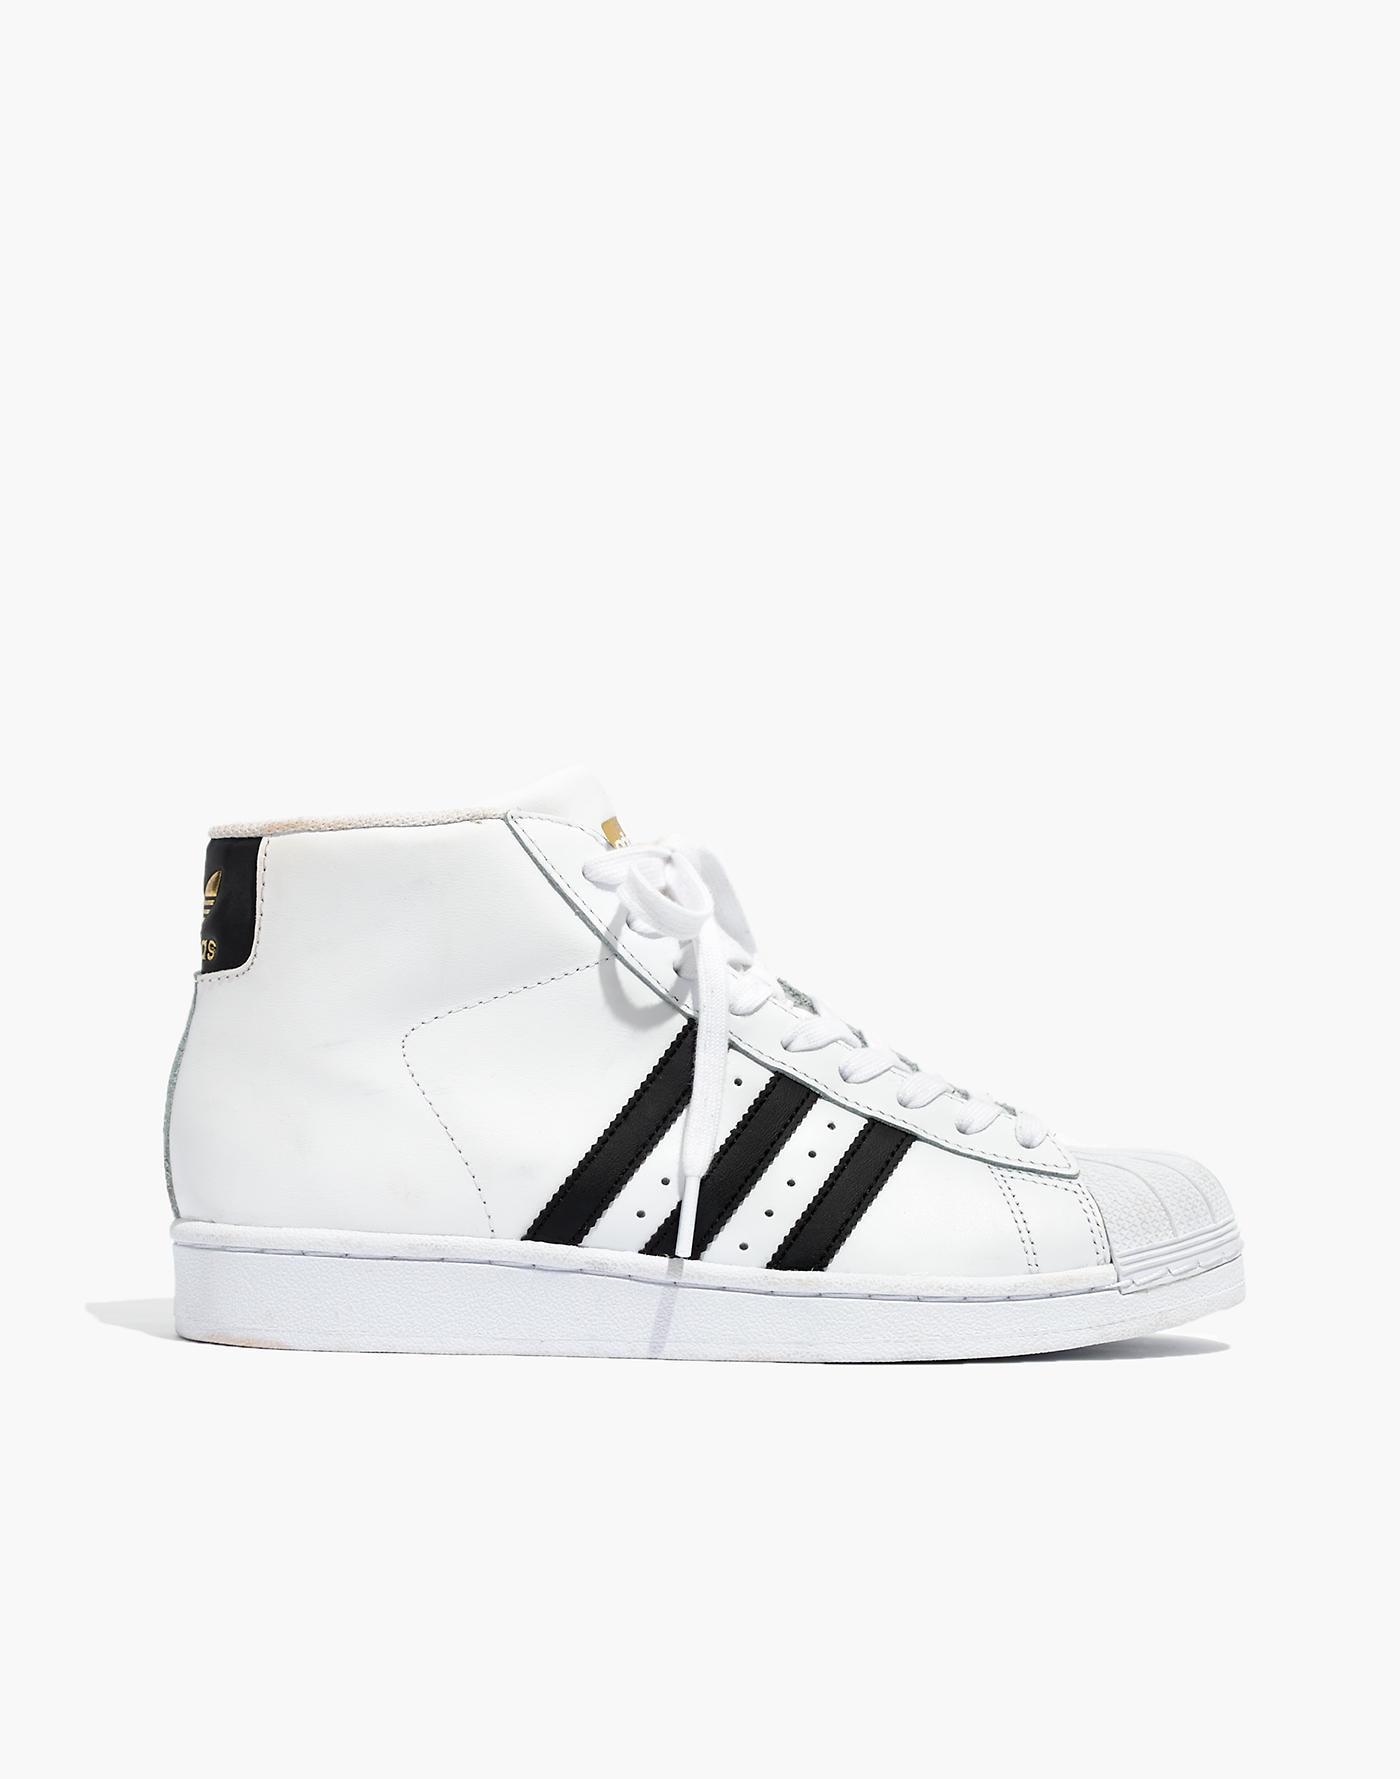 2ead03032a Madewell Adidas Superstartm Pro Model High-top Sneakers in White - Lyst